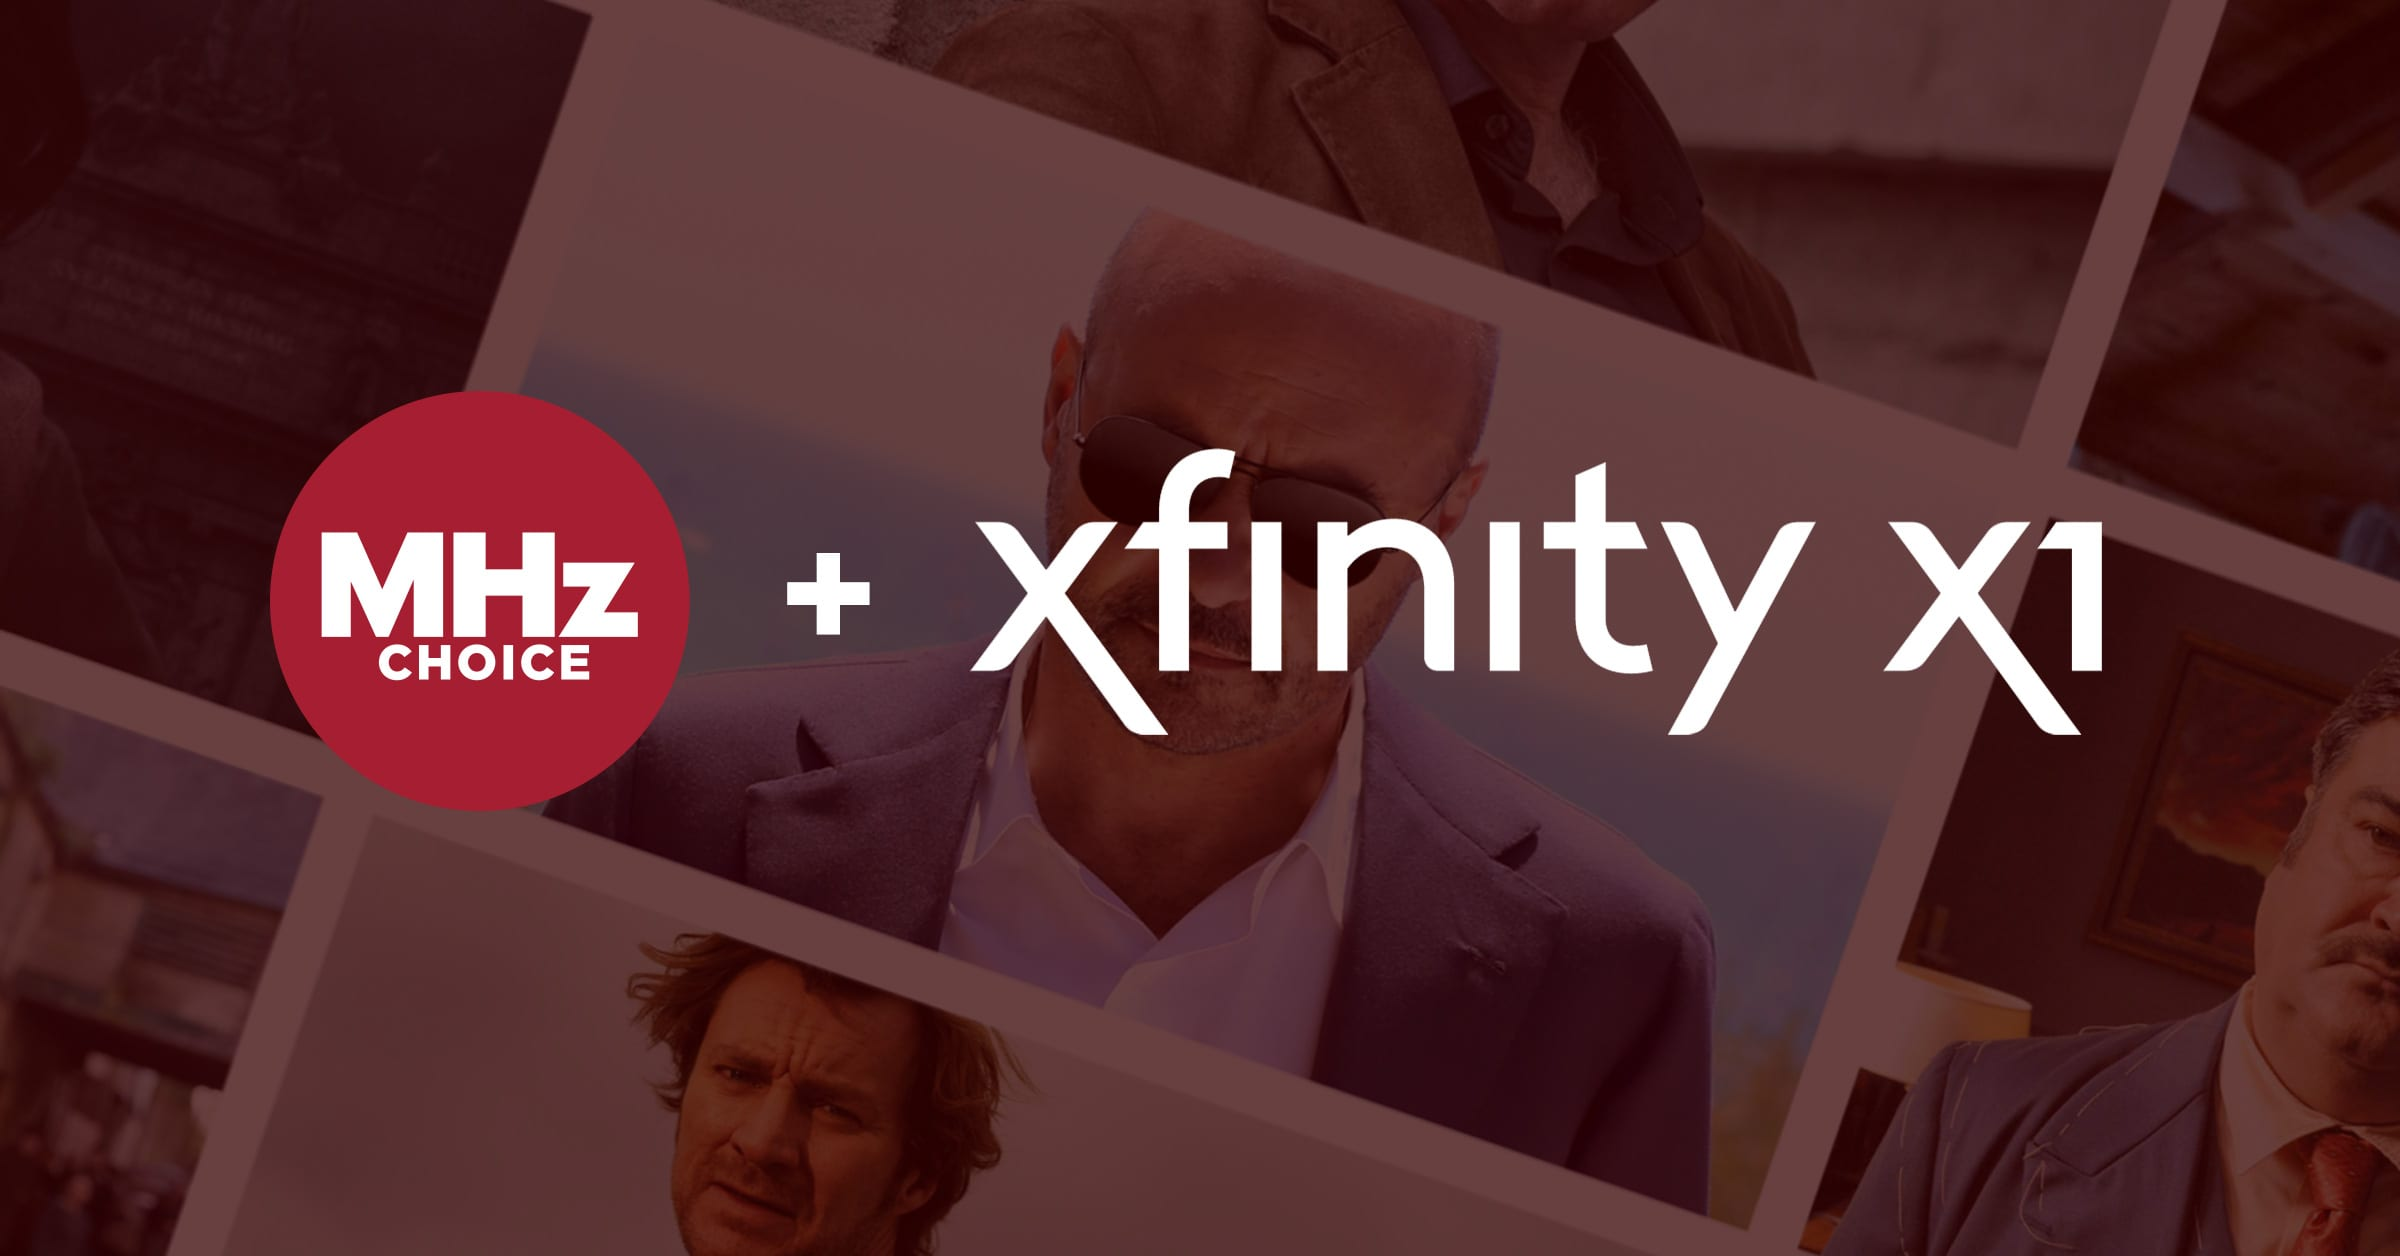 MHz Choice and Comcast Xfinity X1